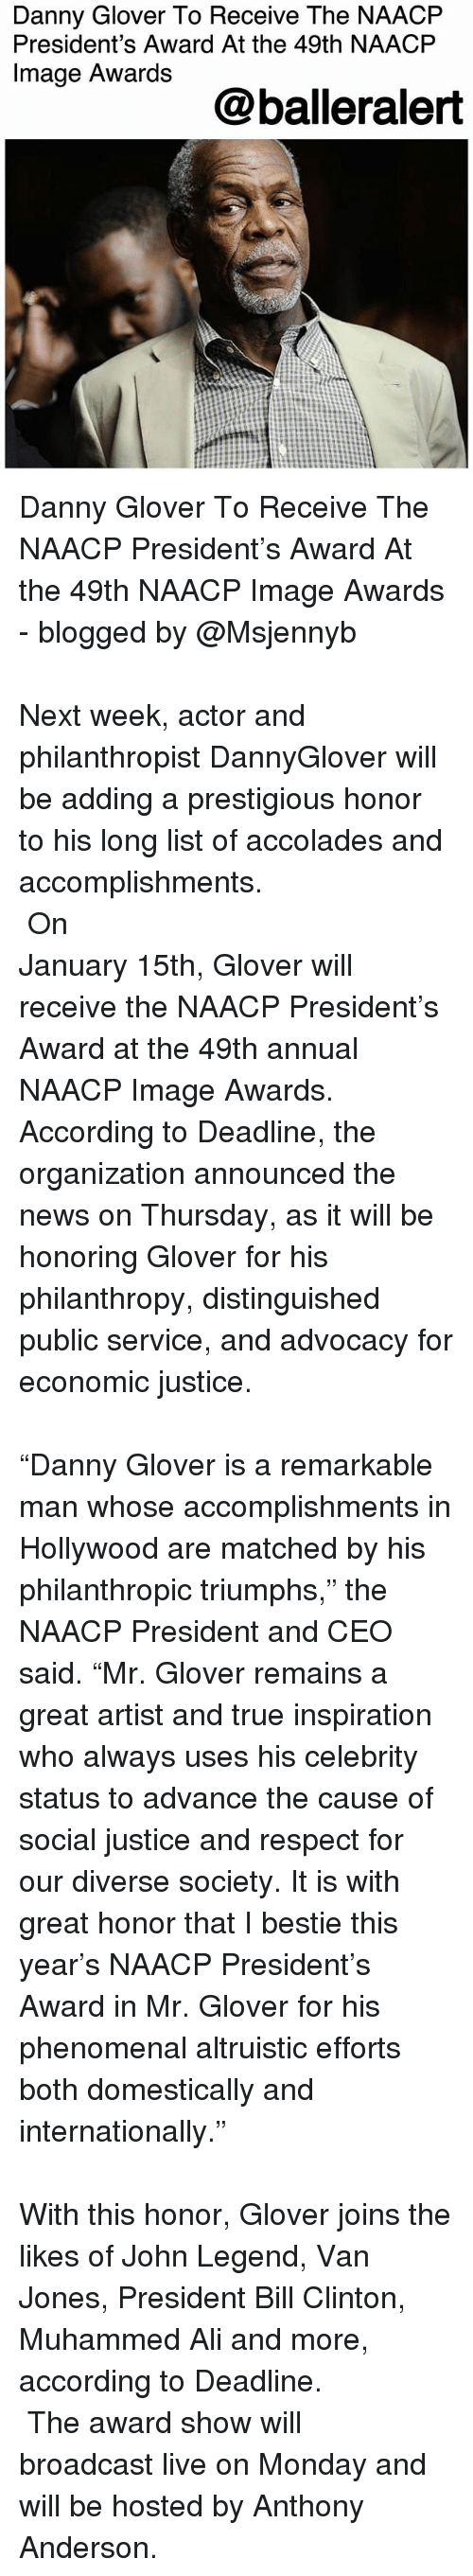 """Ali, Anthony Anderson, and Bill Clinton: Danny Glover To Receive The NAACFP  President's Award At the 49th NAACP  Image Awards  @balleralert Danny Glover To Receive The NAACP President's Award At the 49th NAACP Image Awards - blogged by @Msjennyb ⠀⠀⠀⠀⠀⠀⠀⠀⠀⠀⠀⠀⠀⠀⠀⠀⠀⠀⠀⠀⠀⠀⠀⠀⠀⠀⠀⠀⠀⠀⠀⠀⠀⠀⠀⠀⠀⠀⠀⠀⠀⠀⠀⠀⠀ Next week, actor and philanthropist DannyGlover will be adding a prestigious honor to his long list of accolades and accomplishments. ⠀⠀⠀⠀⠀⠀⠀⠀⠀⠀⠀⠀⠀⠀⠀⠀⠀⠀⠀⠀⠀⠀⠀⠀⠀⠀⠀⠀⠀⠀⠀⠀⠀⠀⠀⠀⠀⠀⠀⠀⠀⠀⠀⠀⠀ On January 15th, Glover will receive the NAACP President's Award at the 49th annual NAACP Image Awards. According to Deadline, the organization announced the news on Thursday, as it will be honoring Glover for his philanthropy, distinguished public service, and advocacy for economic justice. ⠀⠀⠀⠀⠀⠀⠀⠀⠀⠀⠀⠀⠀⠀⠀⠀⠀⠀⠀⠀⠀⠀⠀⠀⠀⠀⠀⠀⠀⠀⠀⠀⠀⠀⠀⠀⠀⠀⠀⠀⠀⠀⠀⠀⠀ """"Danny Glover is a remarkable man whose accomplishments in Hollywood are matched by his philanthropic triumphs,"""" the NAACP President and CEO said. """"Mr. Glover remains a great artist and true inspiration who always uses his celebrity status to advance the cause of social justice and respect for our diverse society. It is with great honor that I bestie this year's NAACP President's Award in Mr. Glover for his phenomenal altruistic efforts both domestically and internationally."""" ⠀⠀⠀⠀⠀⠀⠀⠀⠀⠀⠀⠀⠀⠀⠀⠀⠀⠀⠀⠀⠀⠀⠀⠀⠀⠀⠀⠀⠀⠀⠀⠀⠀⠀⠀⠀⠀⠀⠀⠀⠀⠀⠀⠀⠀ With this honor, Glover joins the likes of John Legend, Van Jones, President Bill Clinton, Muhammed Ali and more, according to Deadline. ⠀⠀⠀⠀⠀⠀⠀⠀ ⠀⠀⠀⠀⠀⠀⠀⠀ The award show will broadcast live on Monday and will be hosted by Anthony Anderson."""